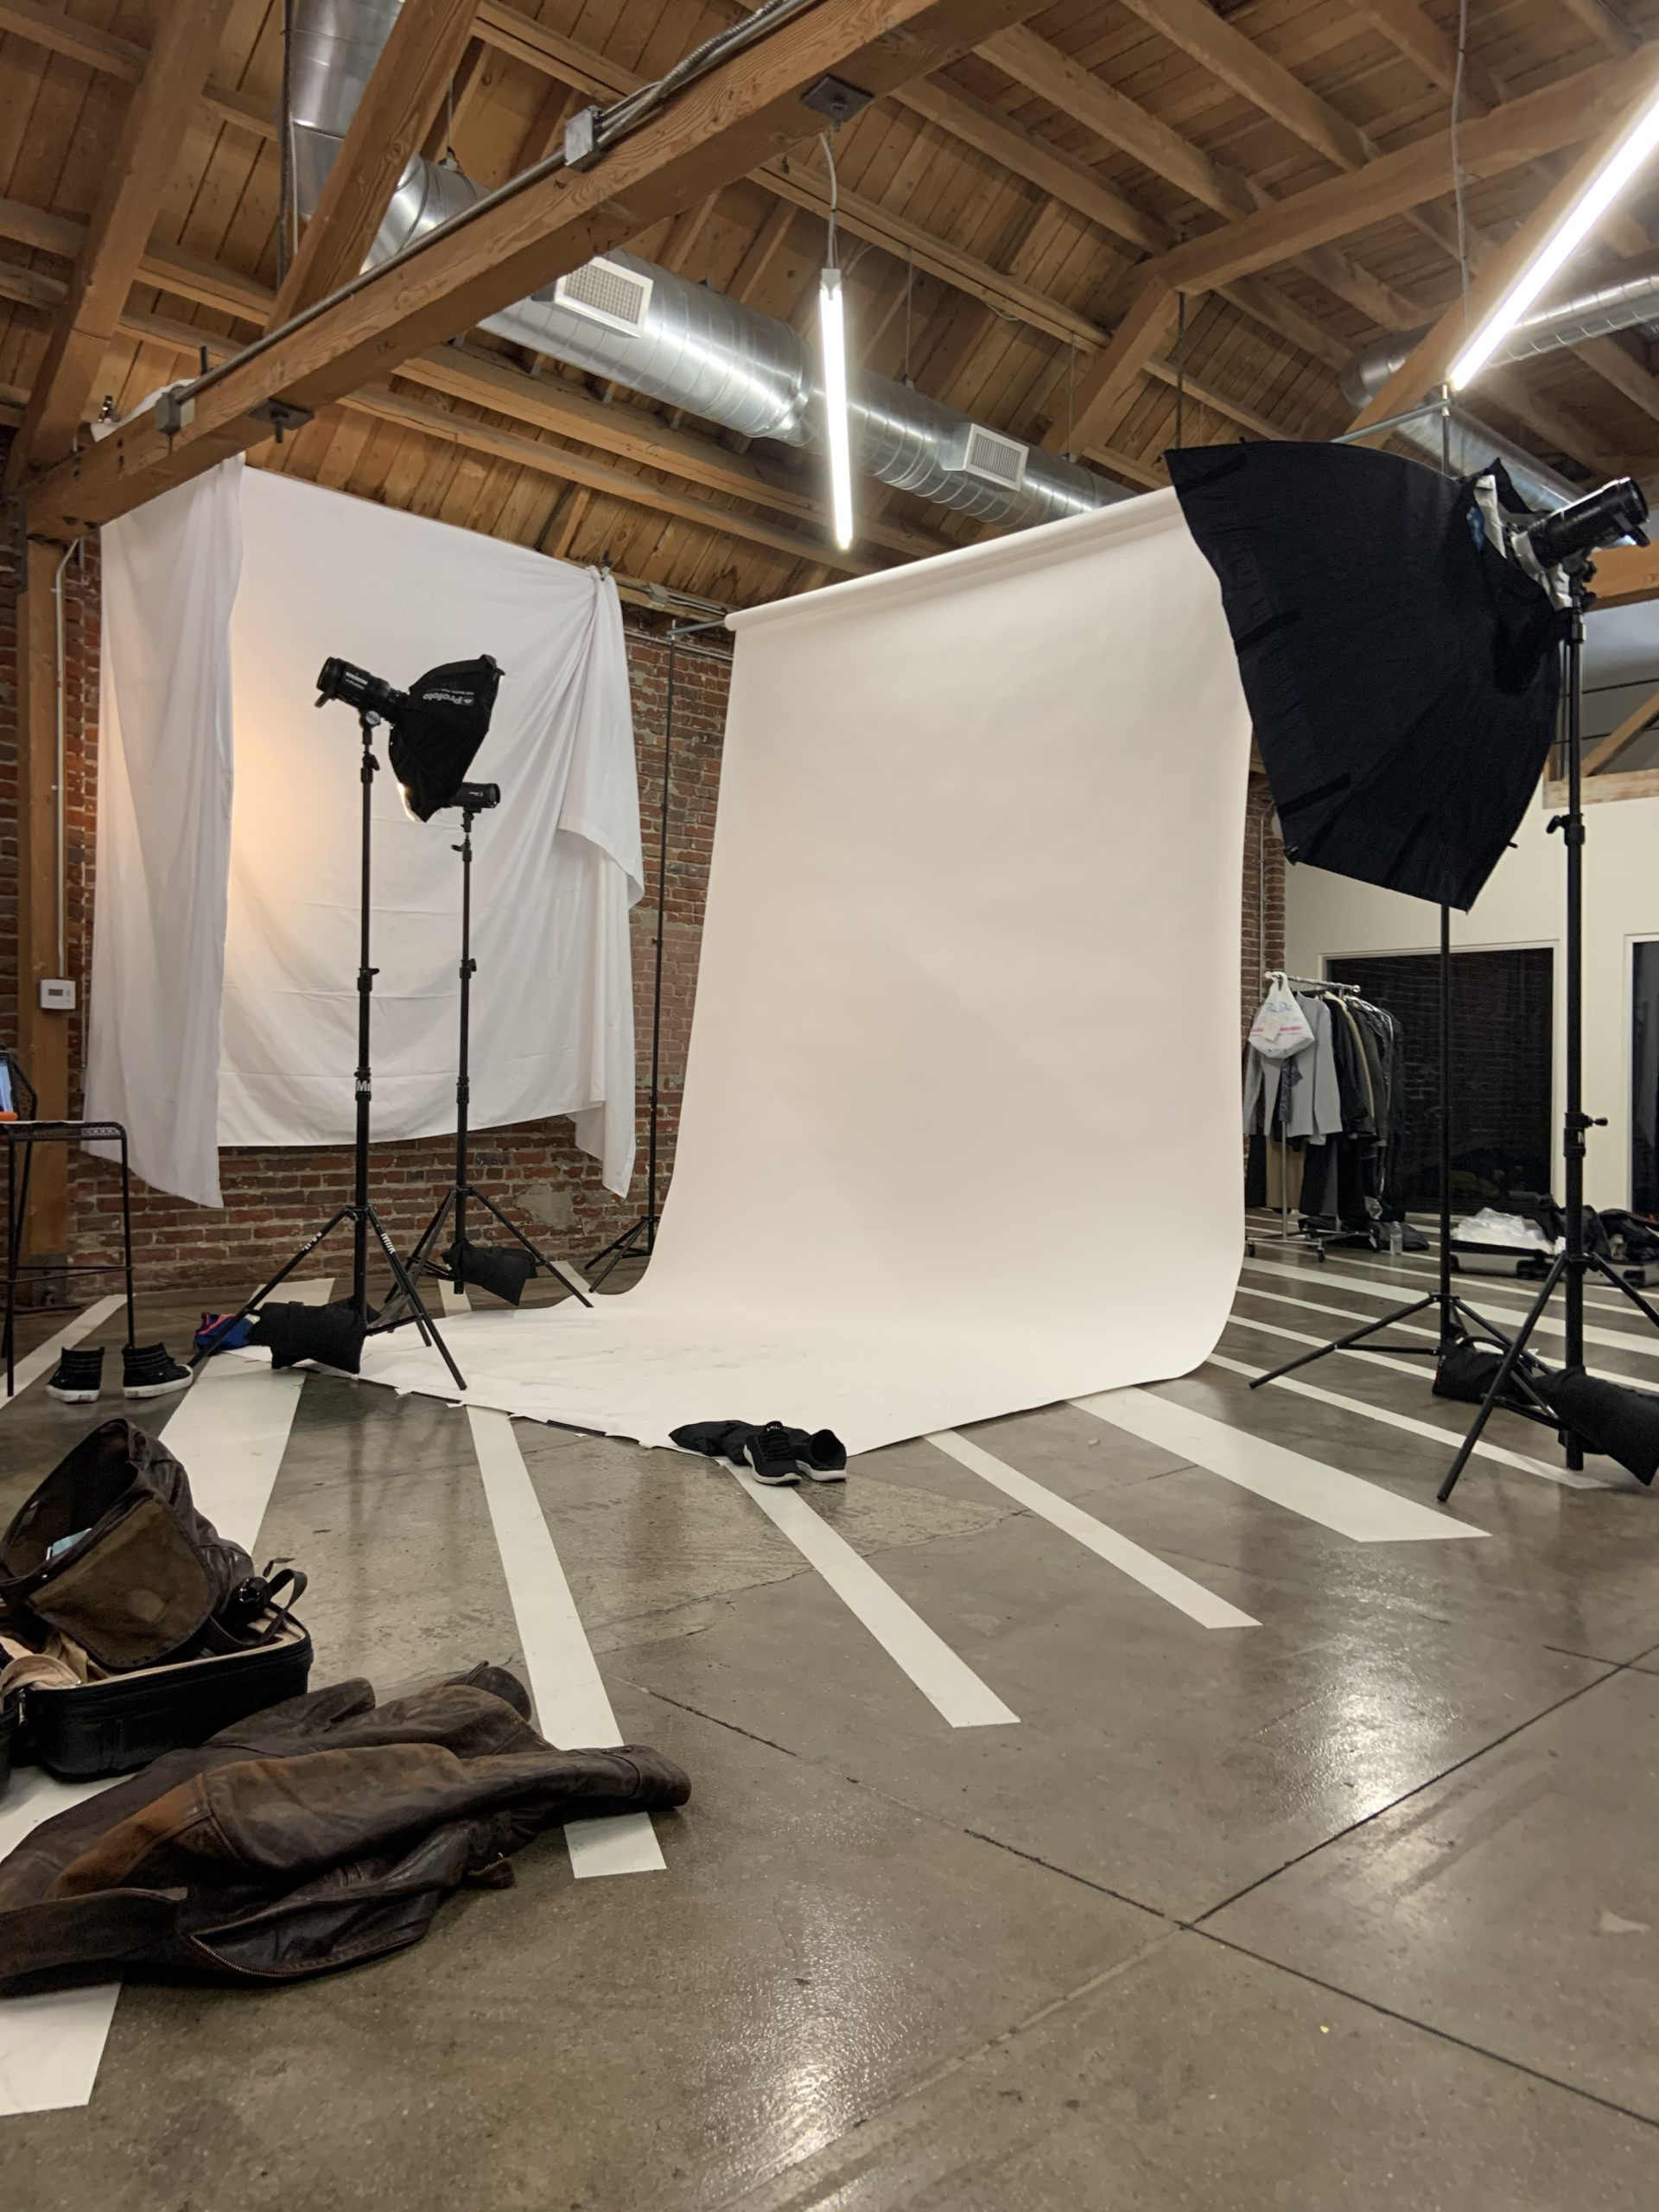 GQ Finn Whittrock Photoshoot Behind-the-Scenes Setup